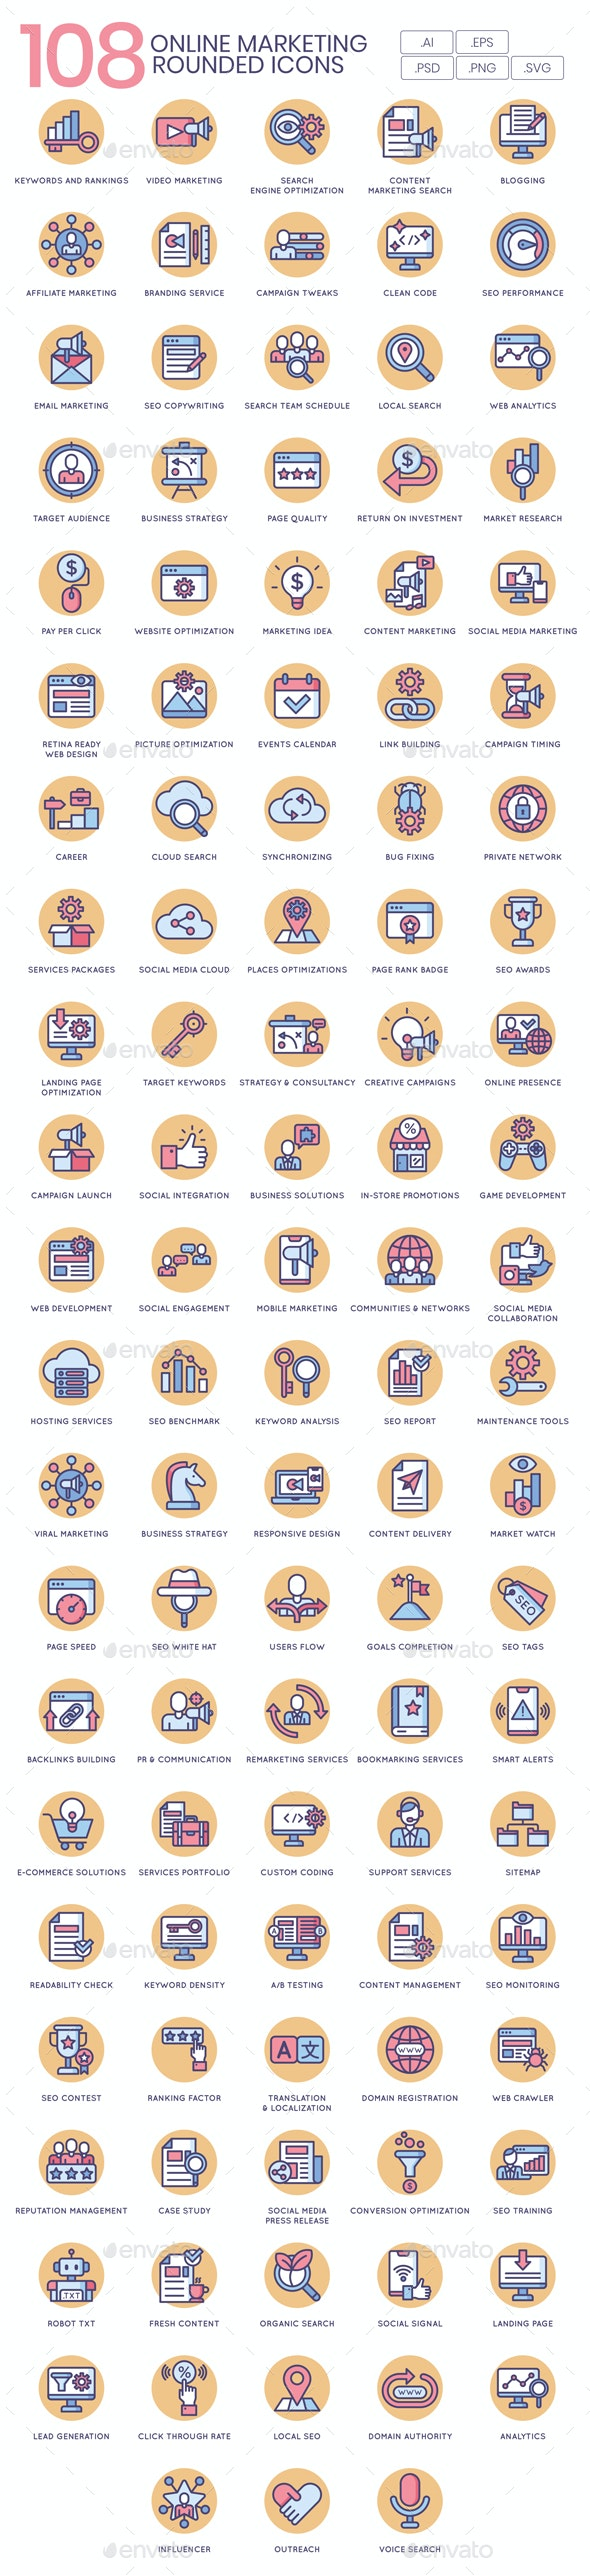 Online Marketing Icons - Butterscotch - Business Icons